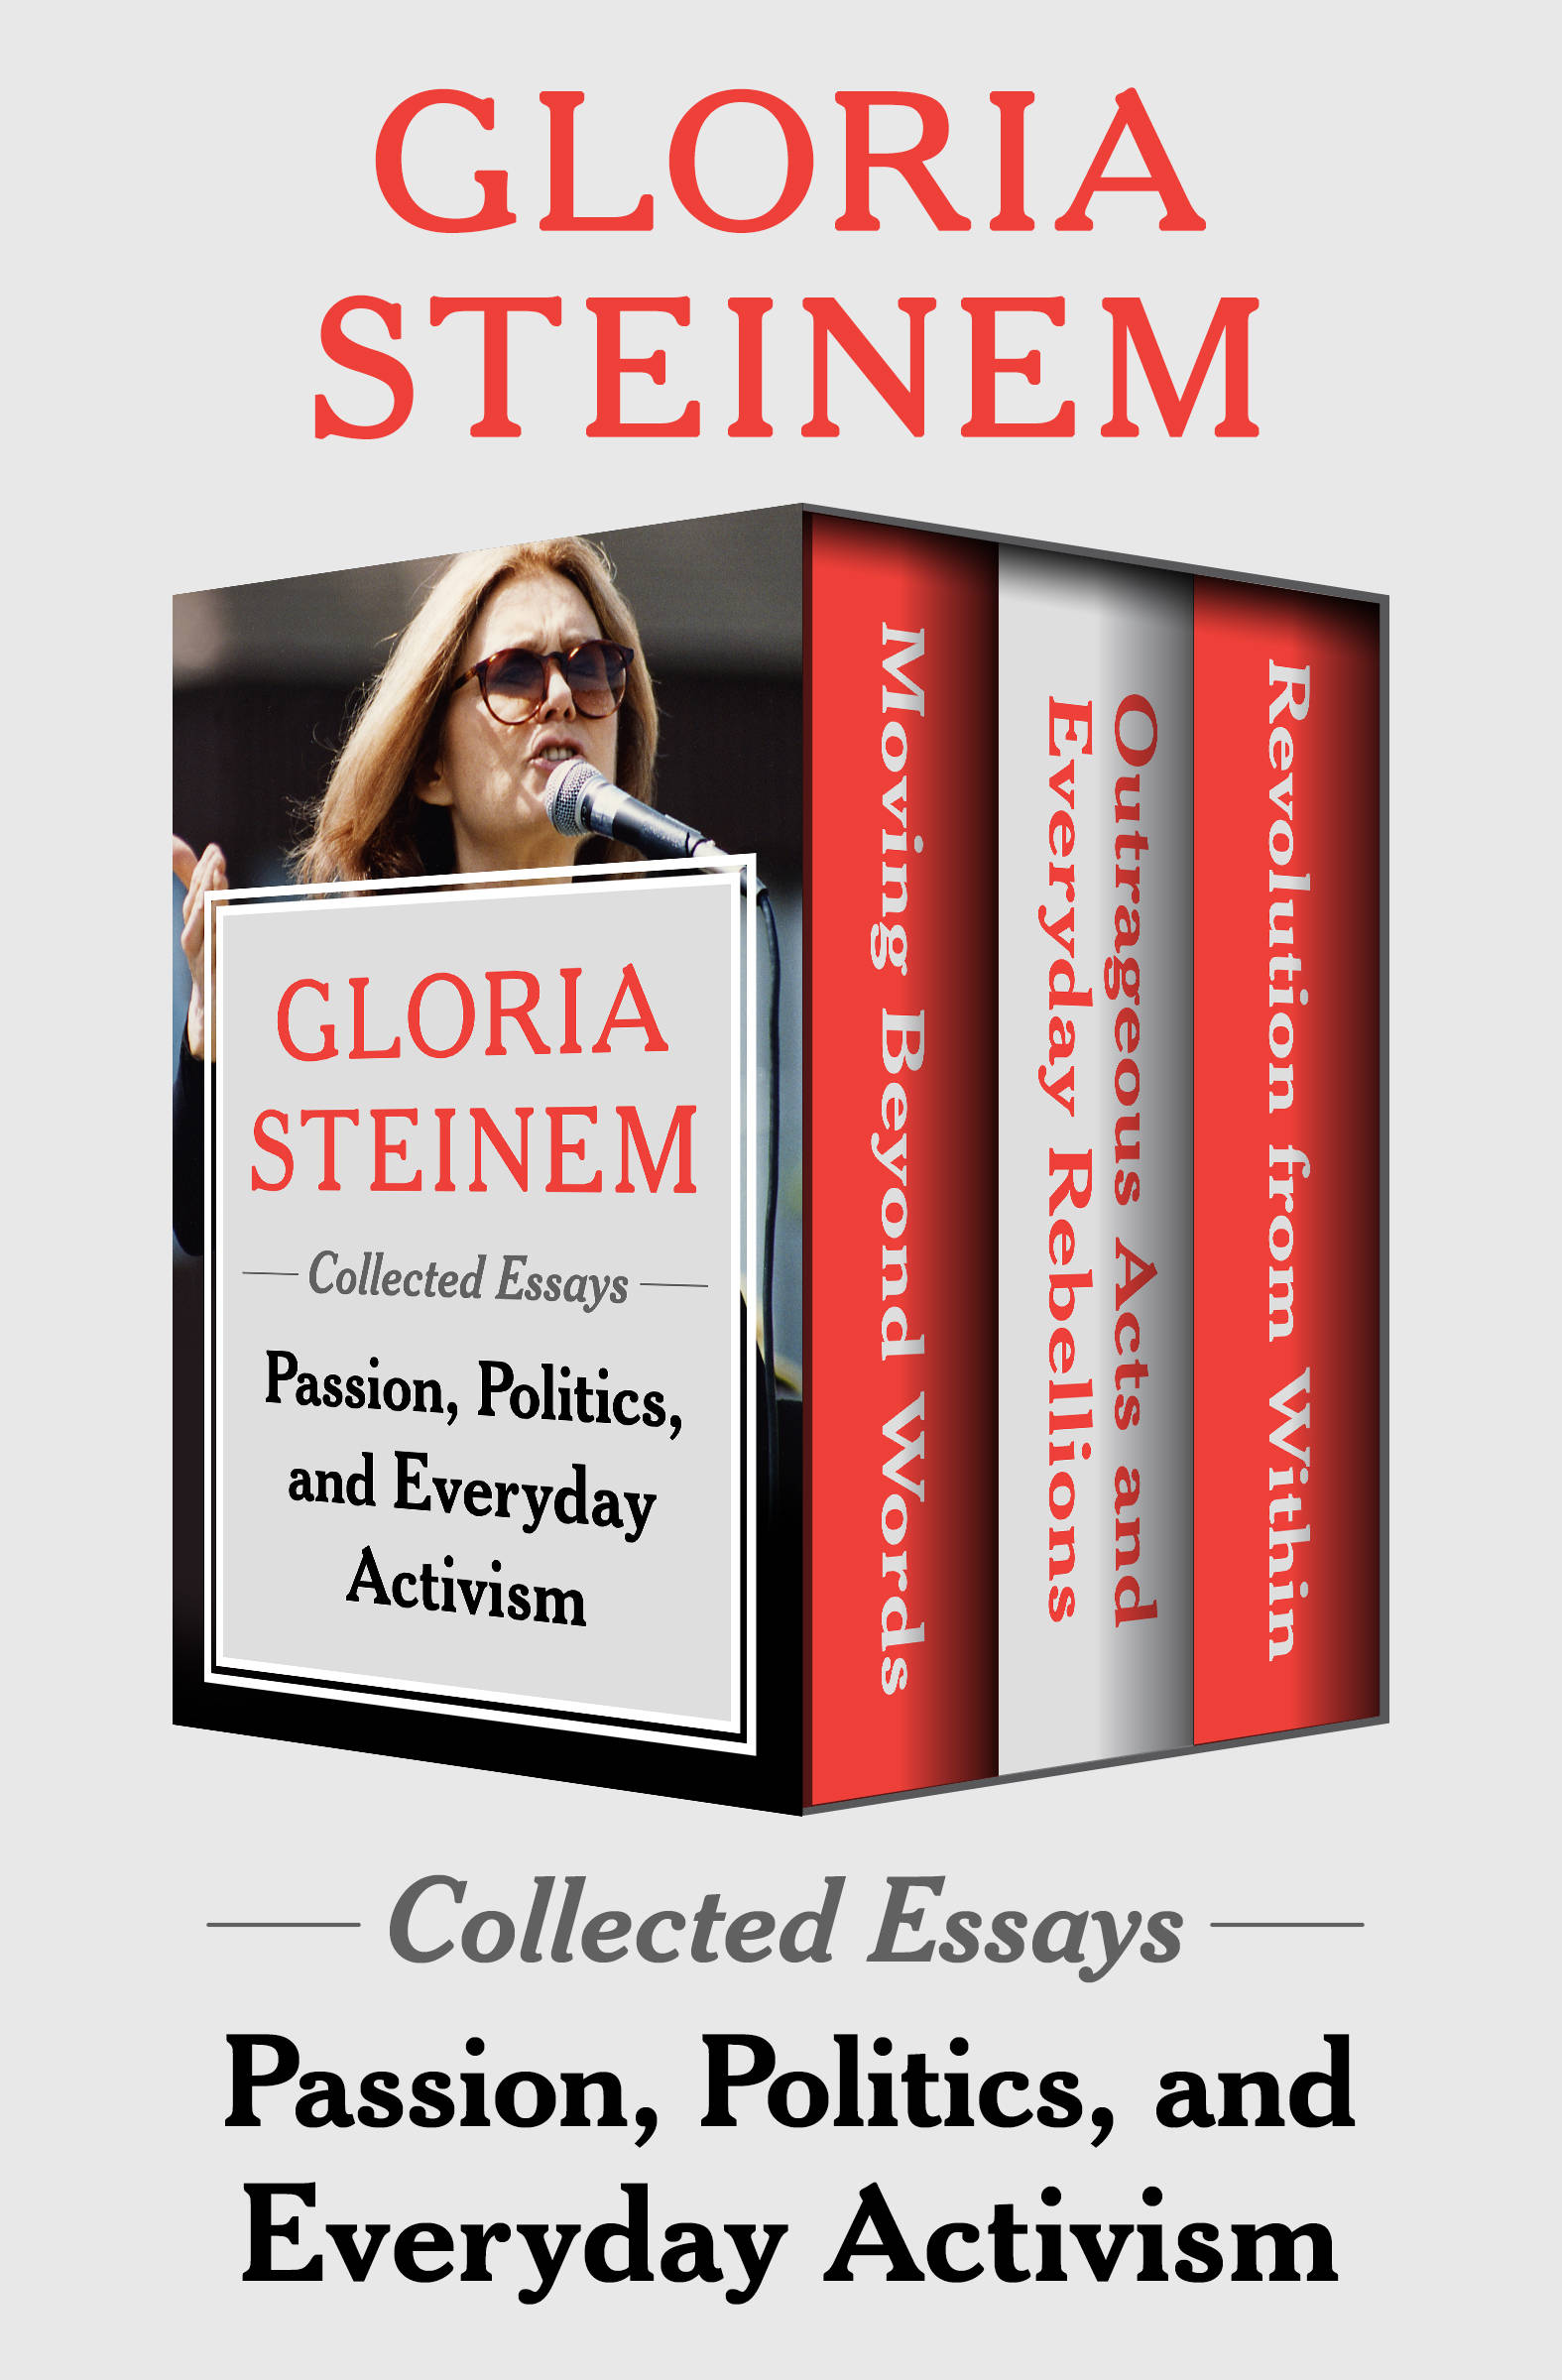 gloria steinem playboy bunny essay First down a few of her famously incendiary essays then take on her 1992   gloria steinem wearing playboy bunny costume, 1960.